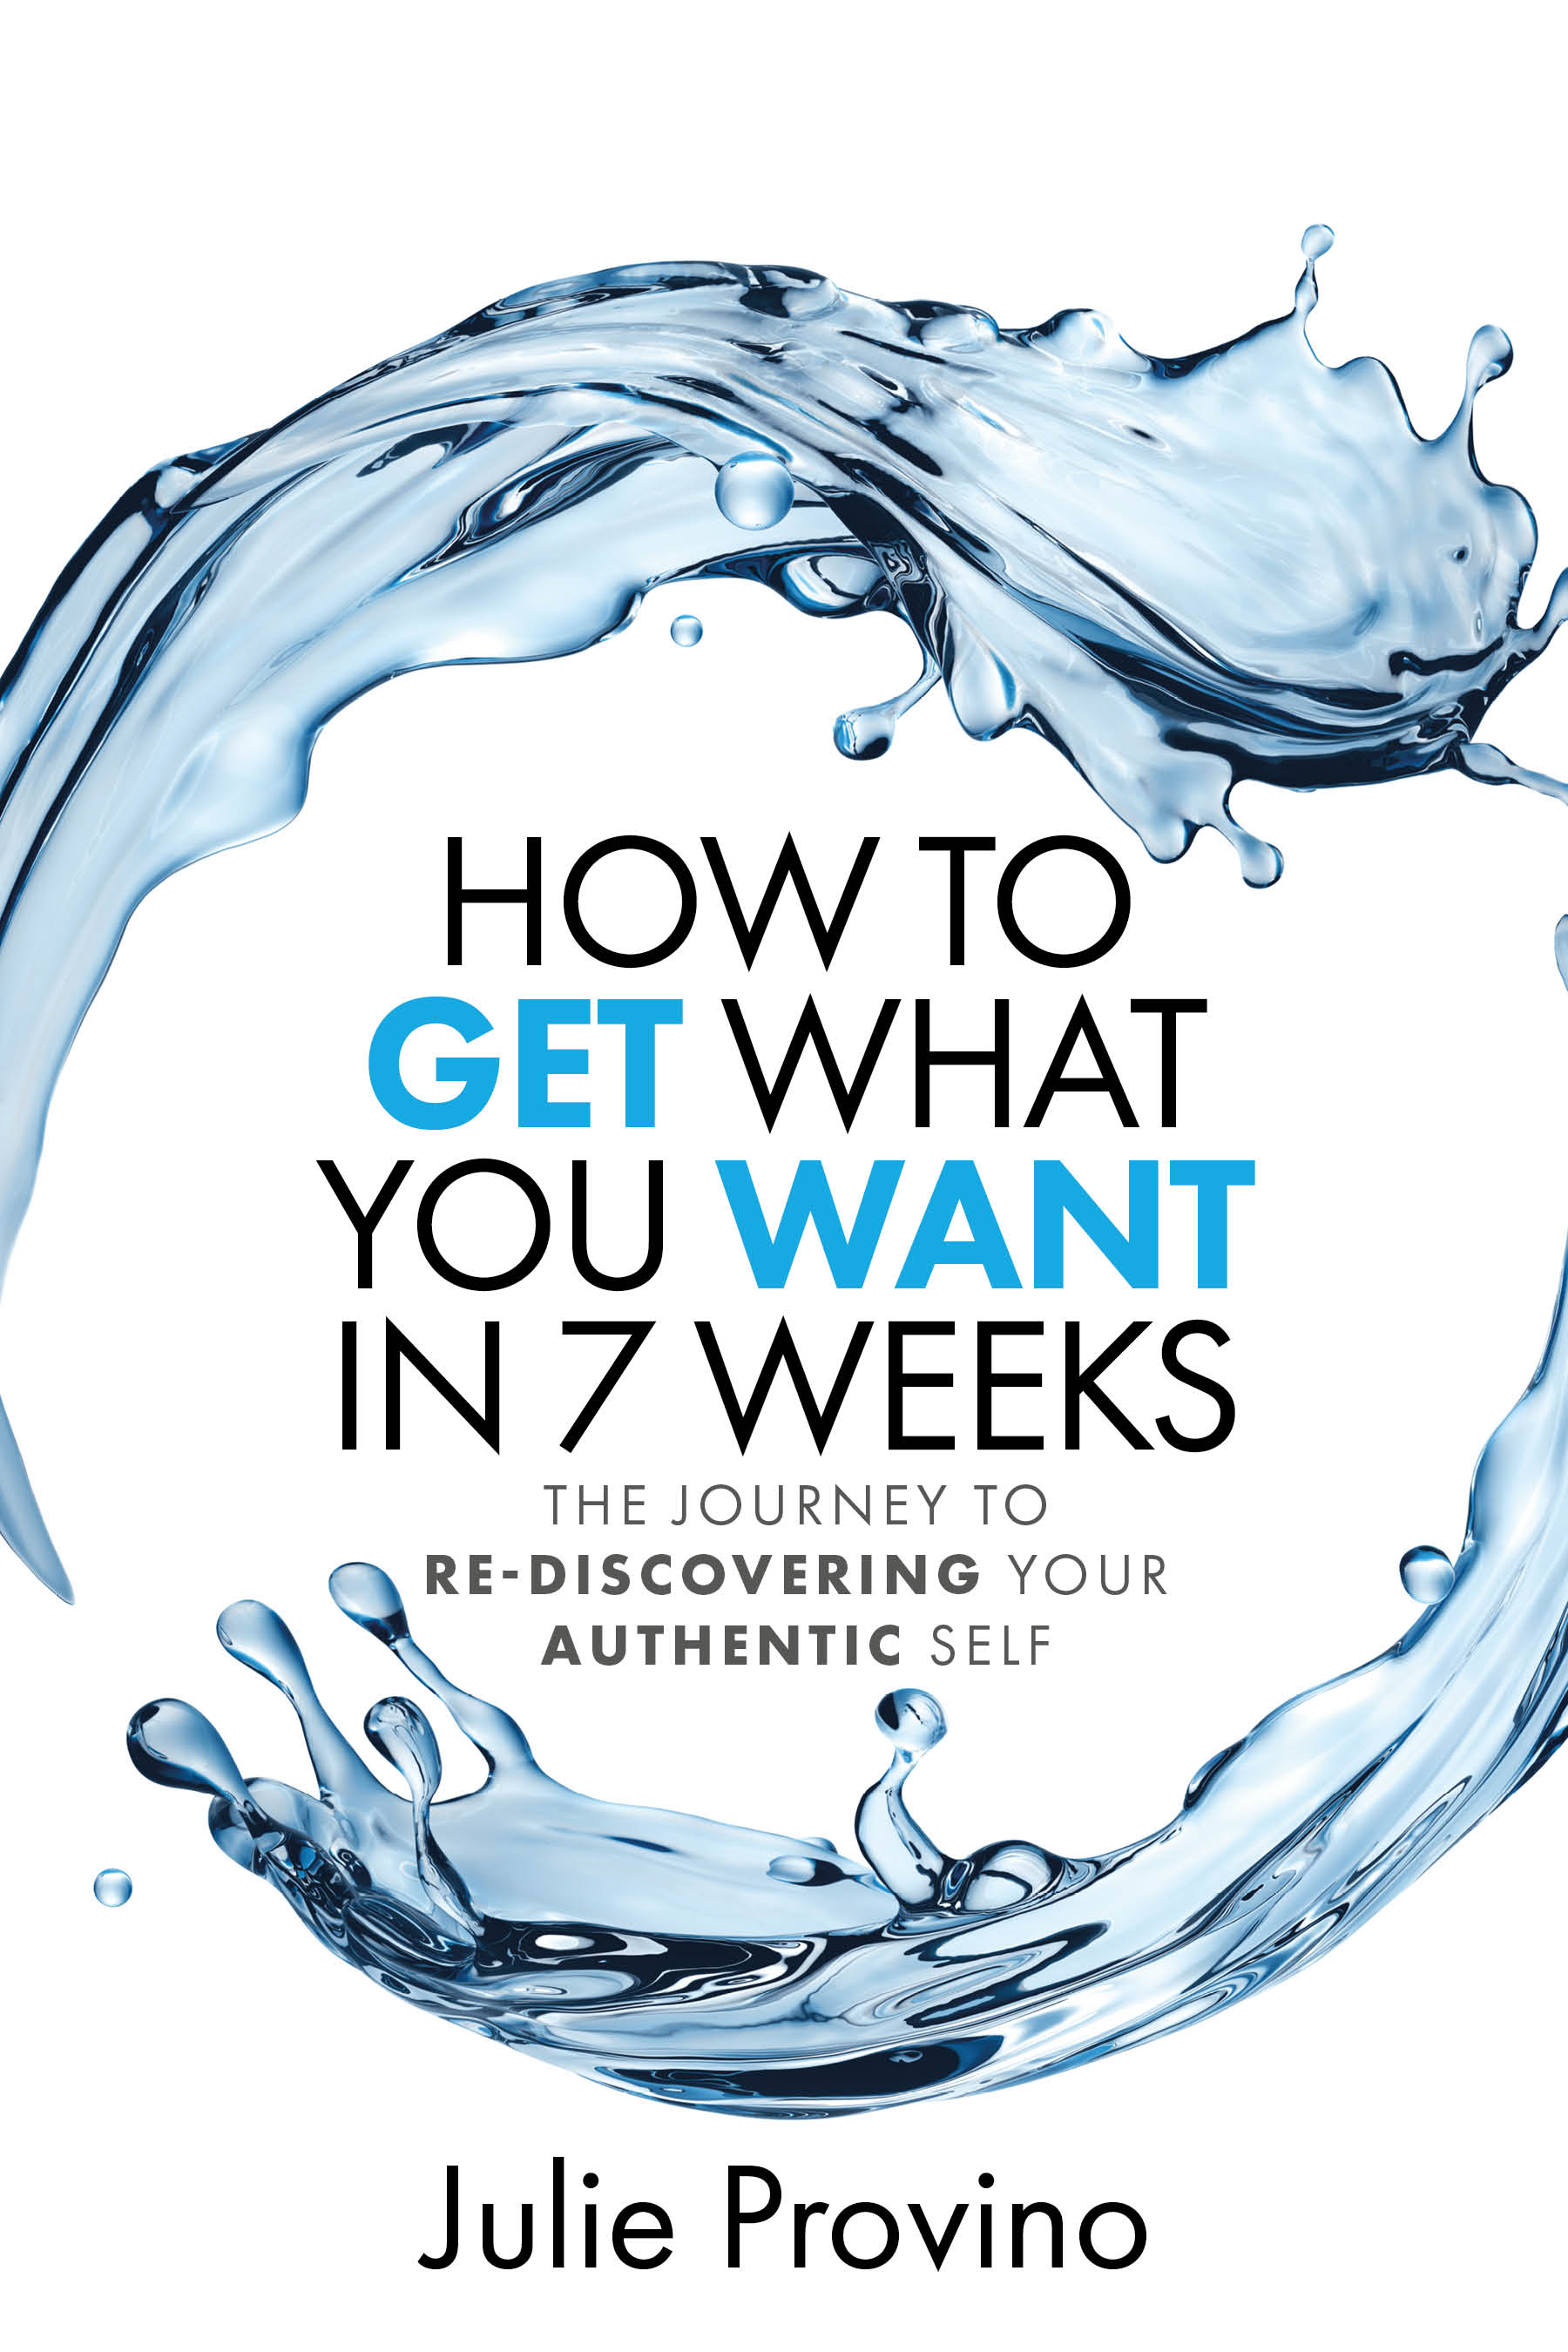 How to Get What You Want In 7 Weeks